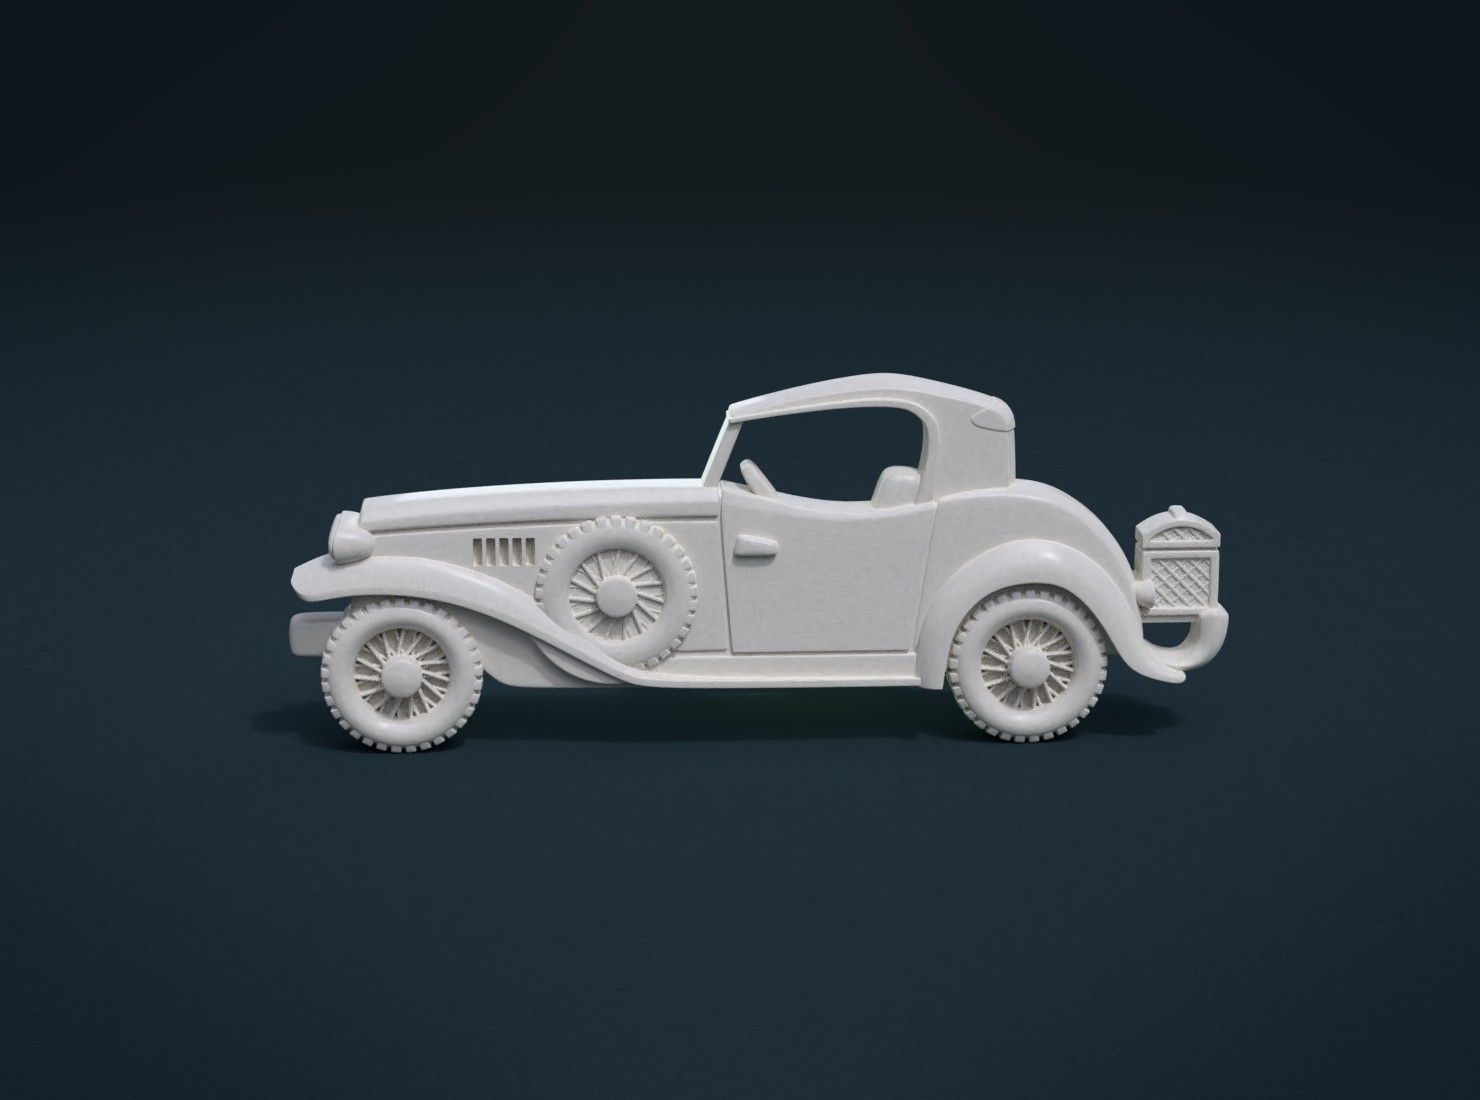 Car_Cycles.jpg Download STL file Car Relief • Design to 3D print, Skazok